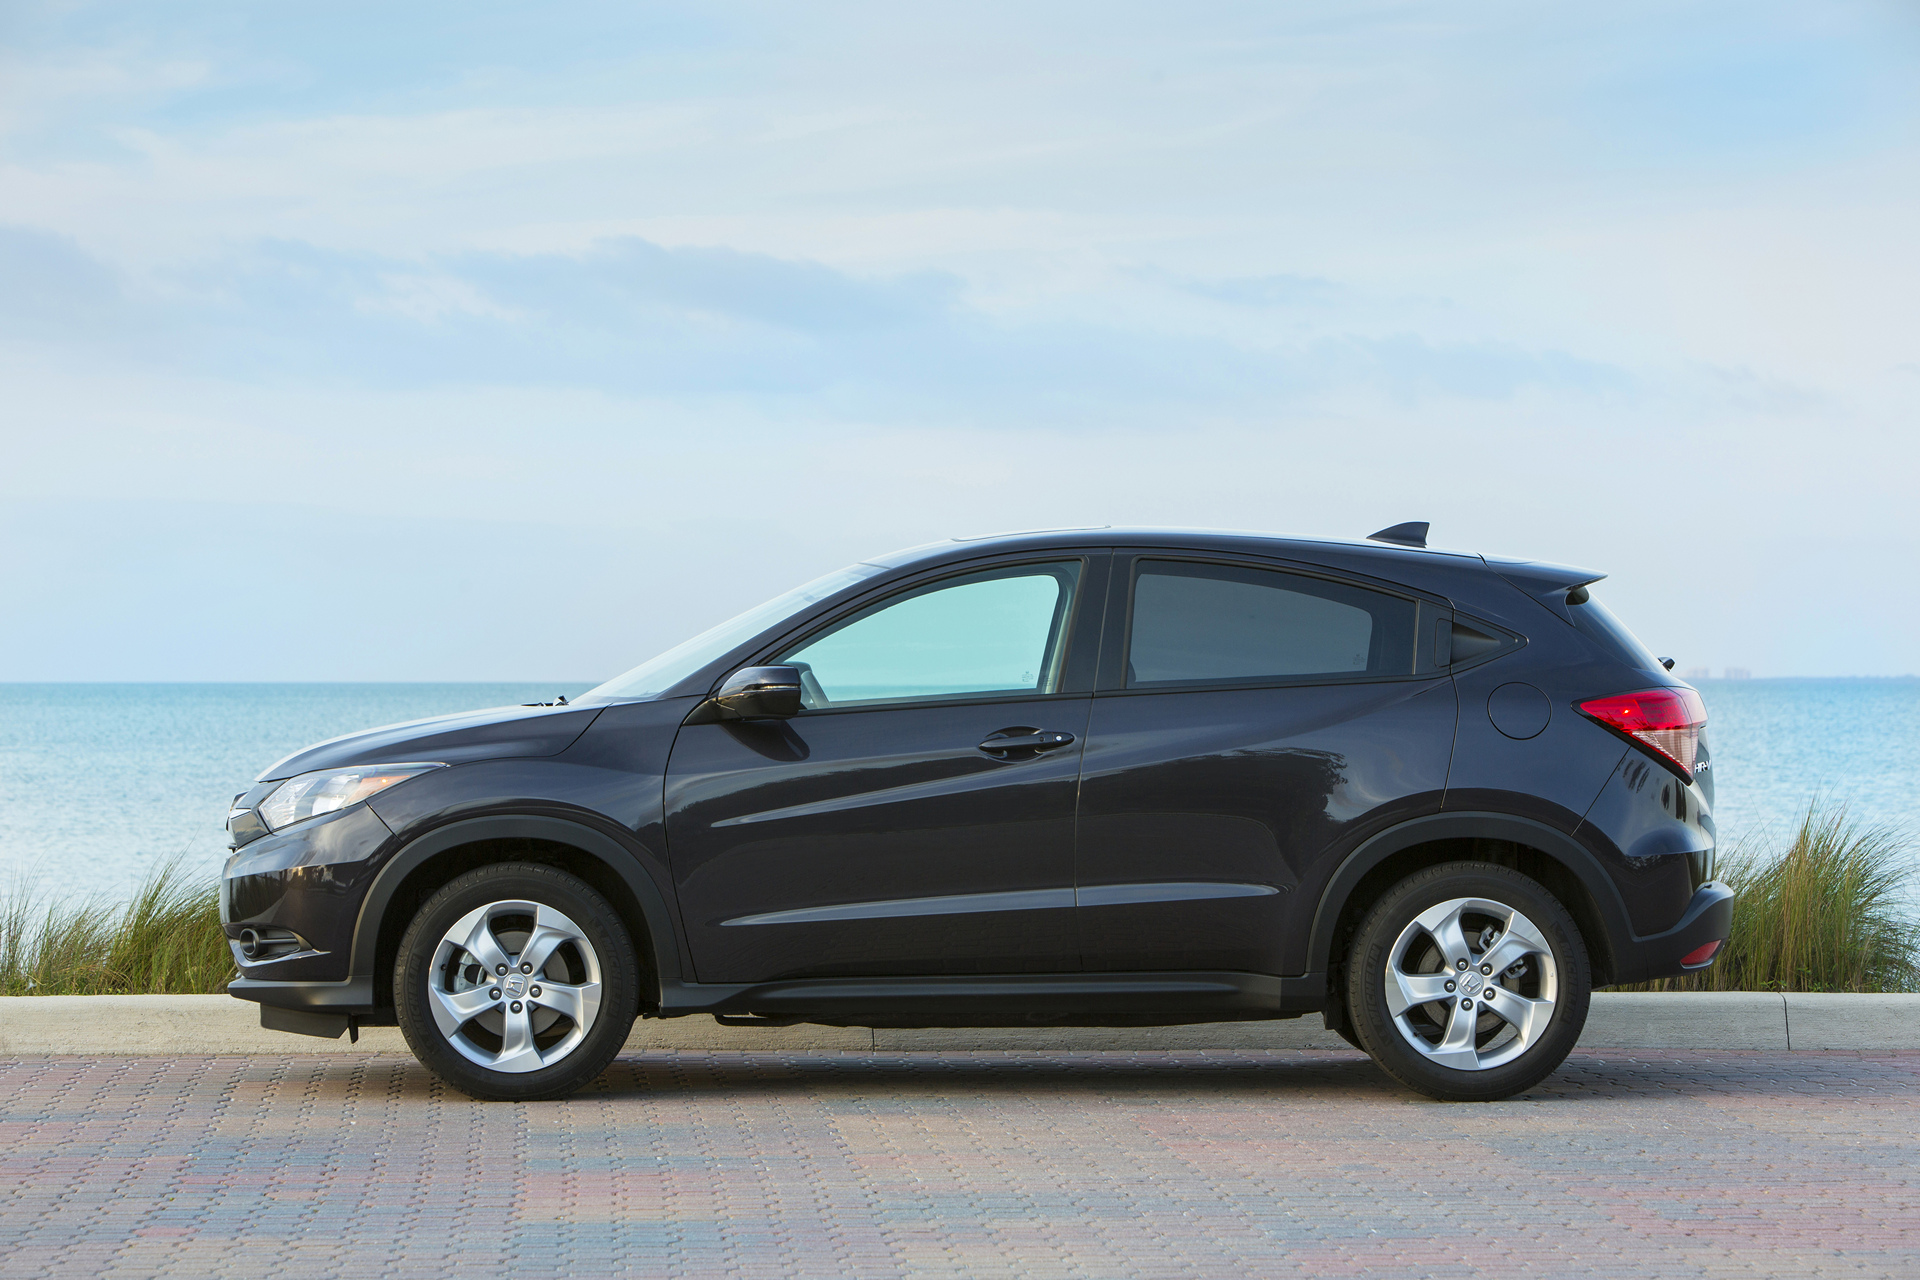 2016 Honda HR-V © Honda Motor Co., Ltd.